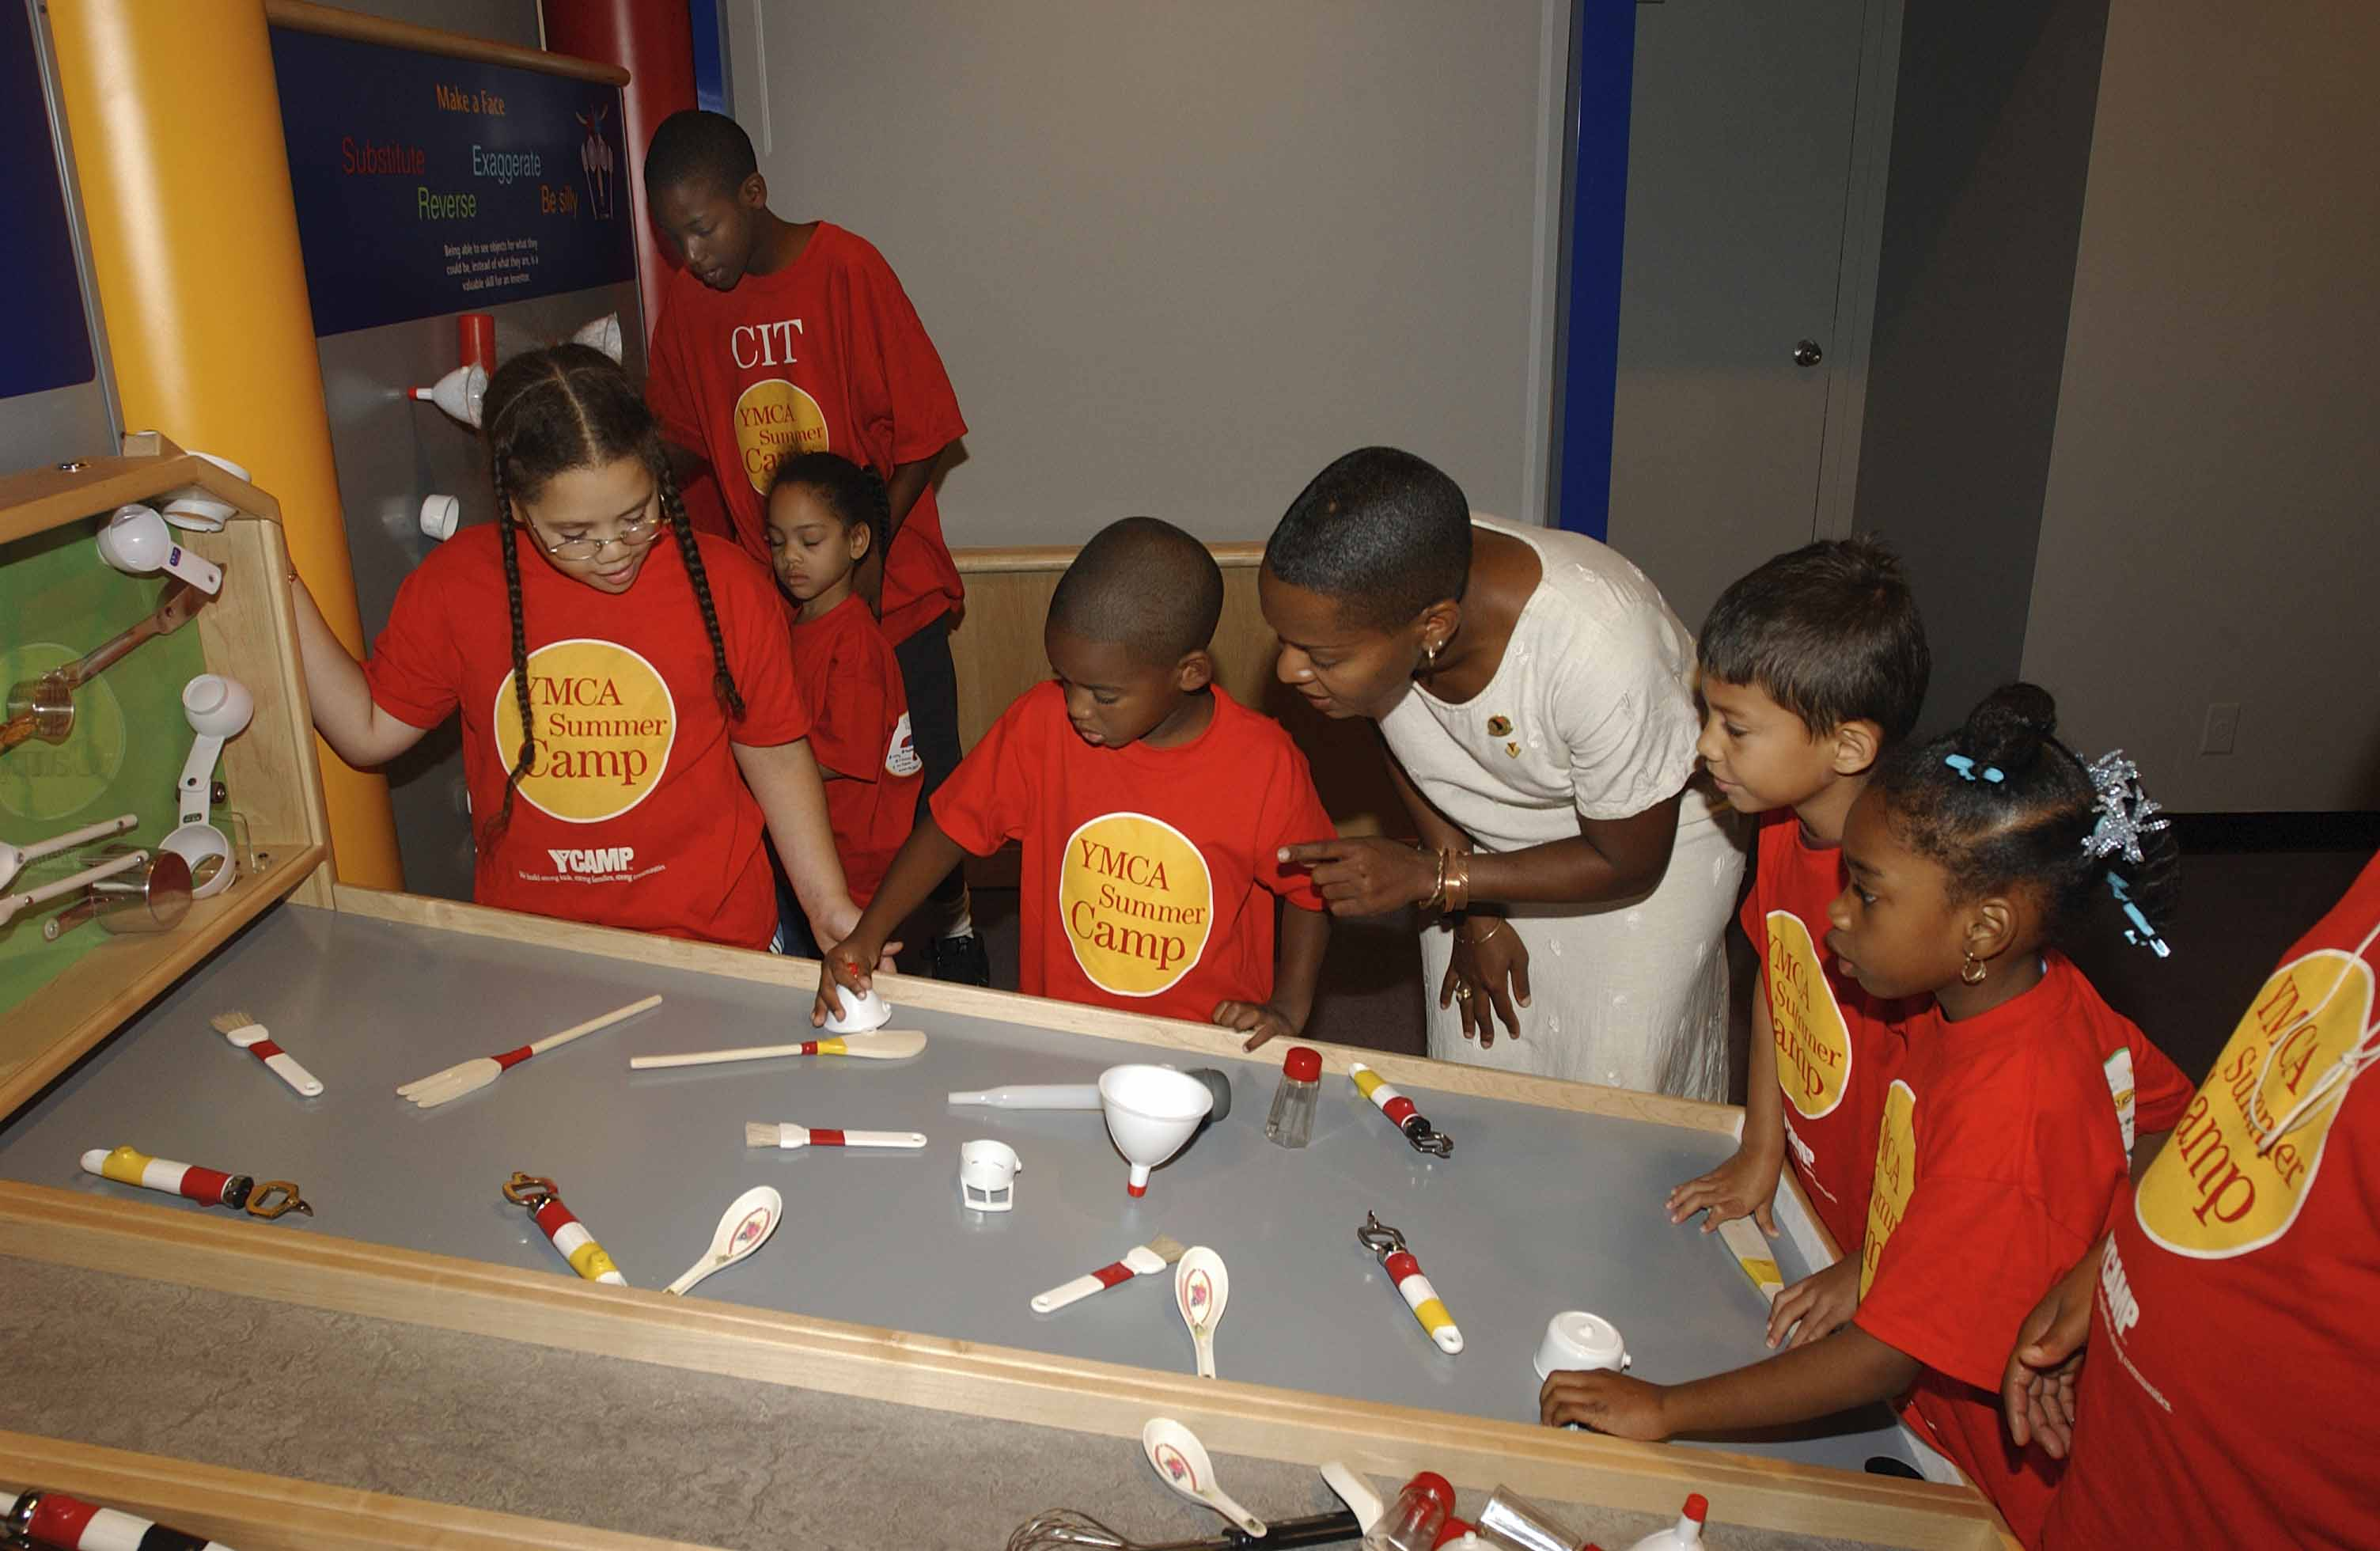 A hands-on activity in Invention at Play